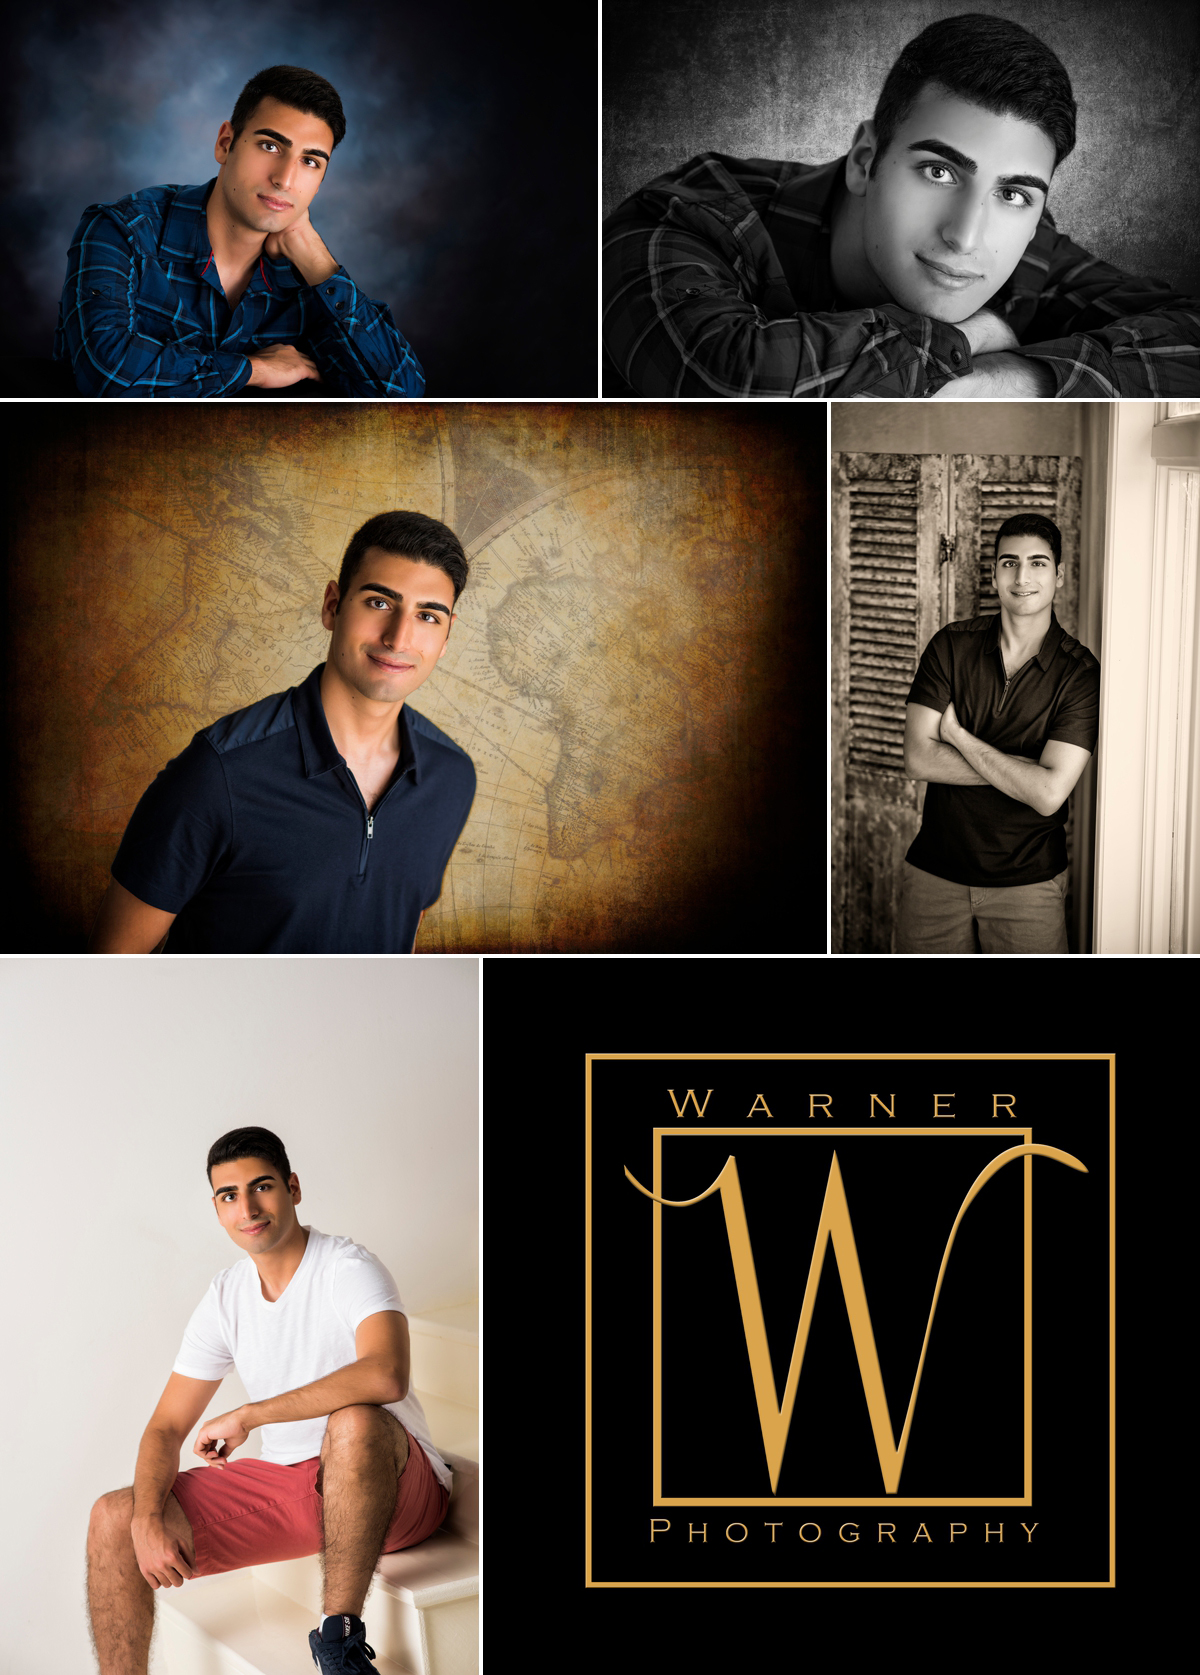 Tarek-senior-collage-warner-photography-midland-michigan